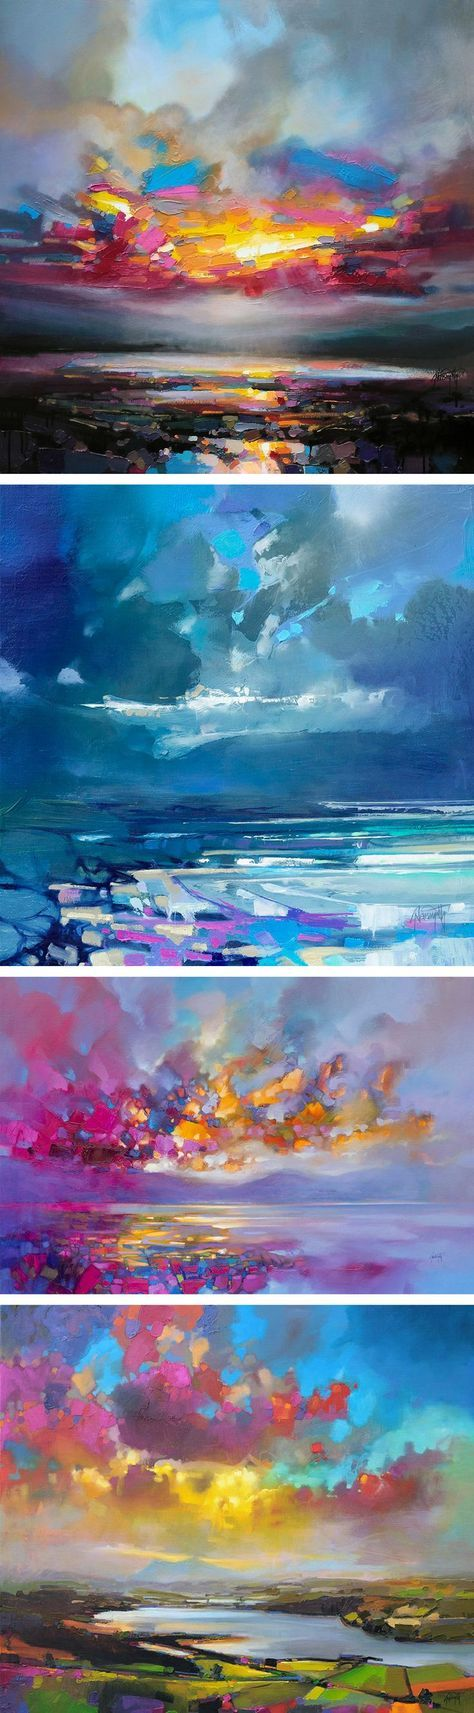 Saatchi art oil painting rural landscape at dawn painting by - Vibrant Oil Paintings Of Scottish Landscapes By Scott Naismith More